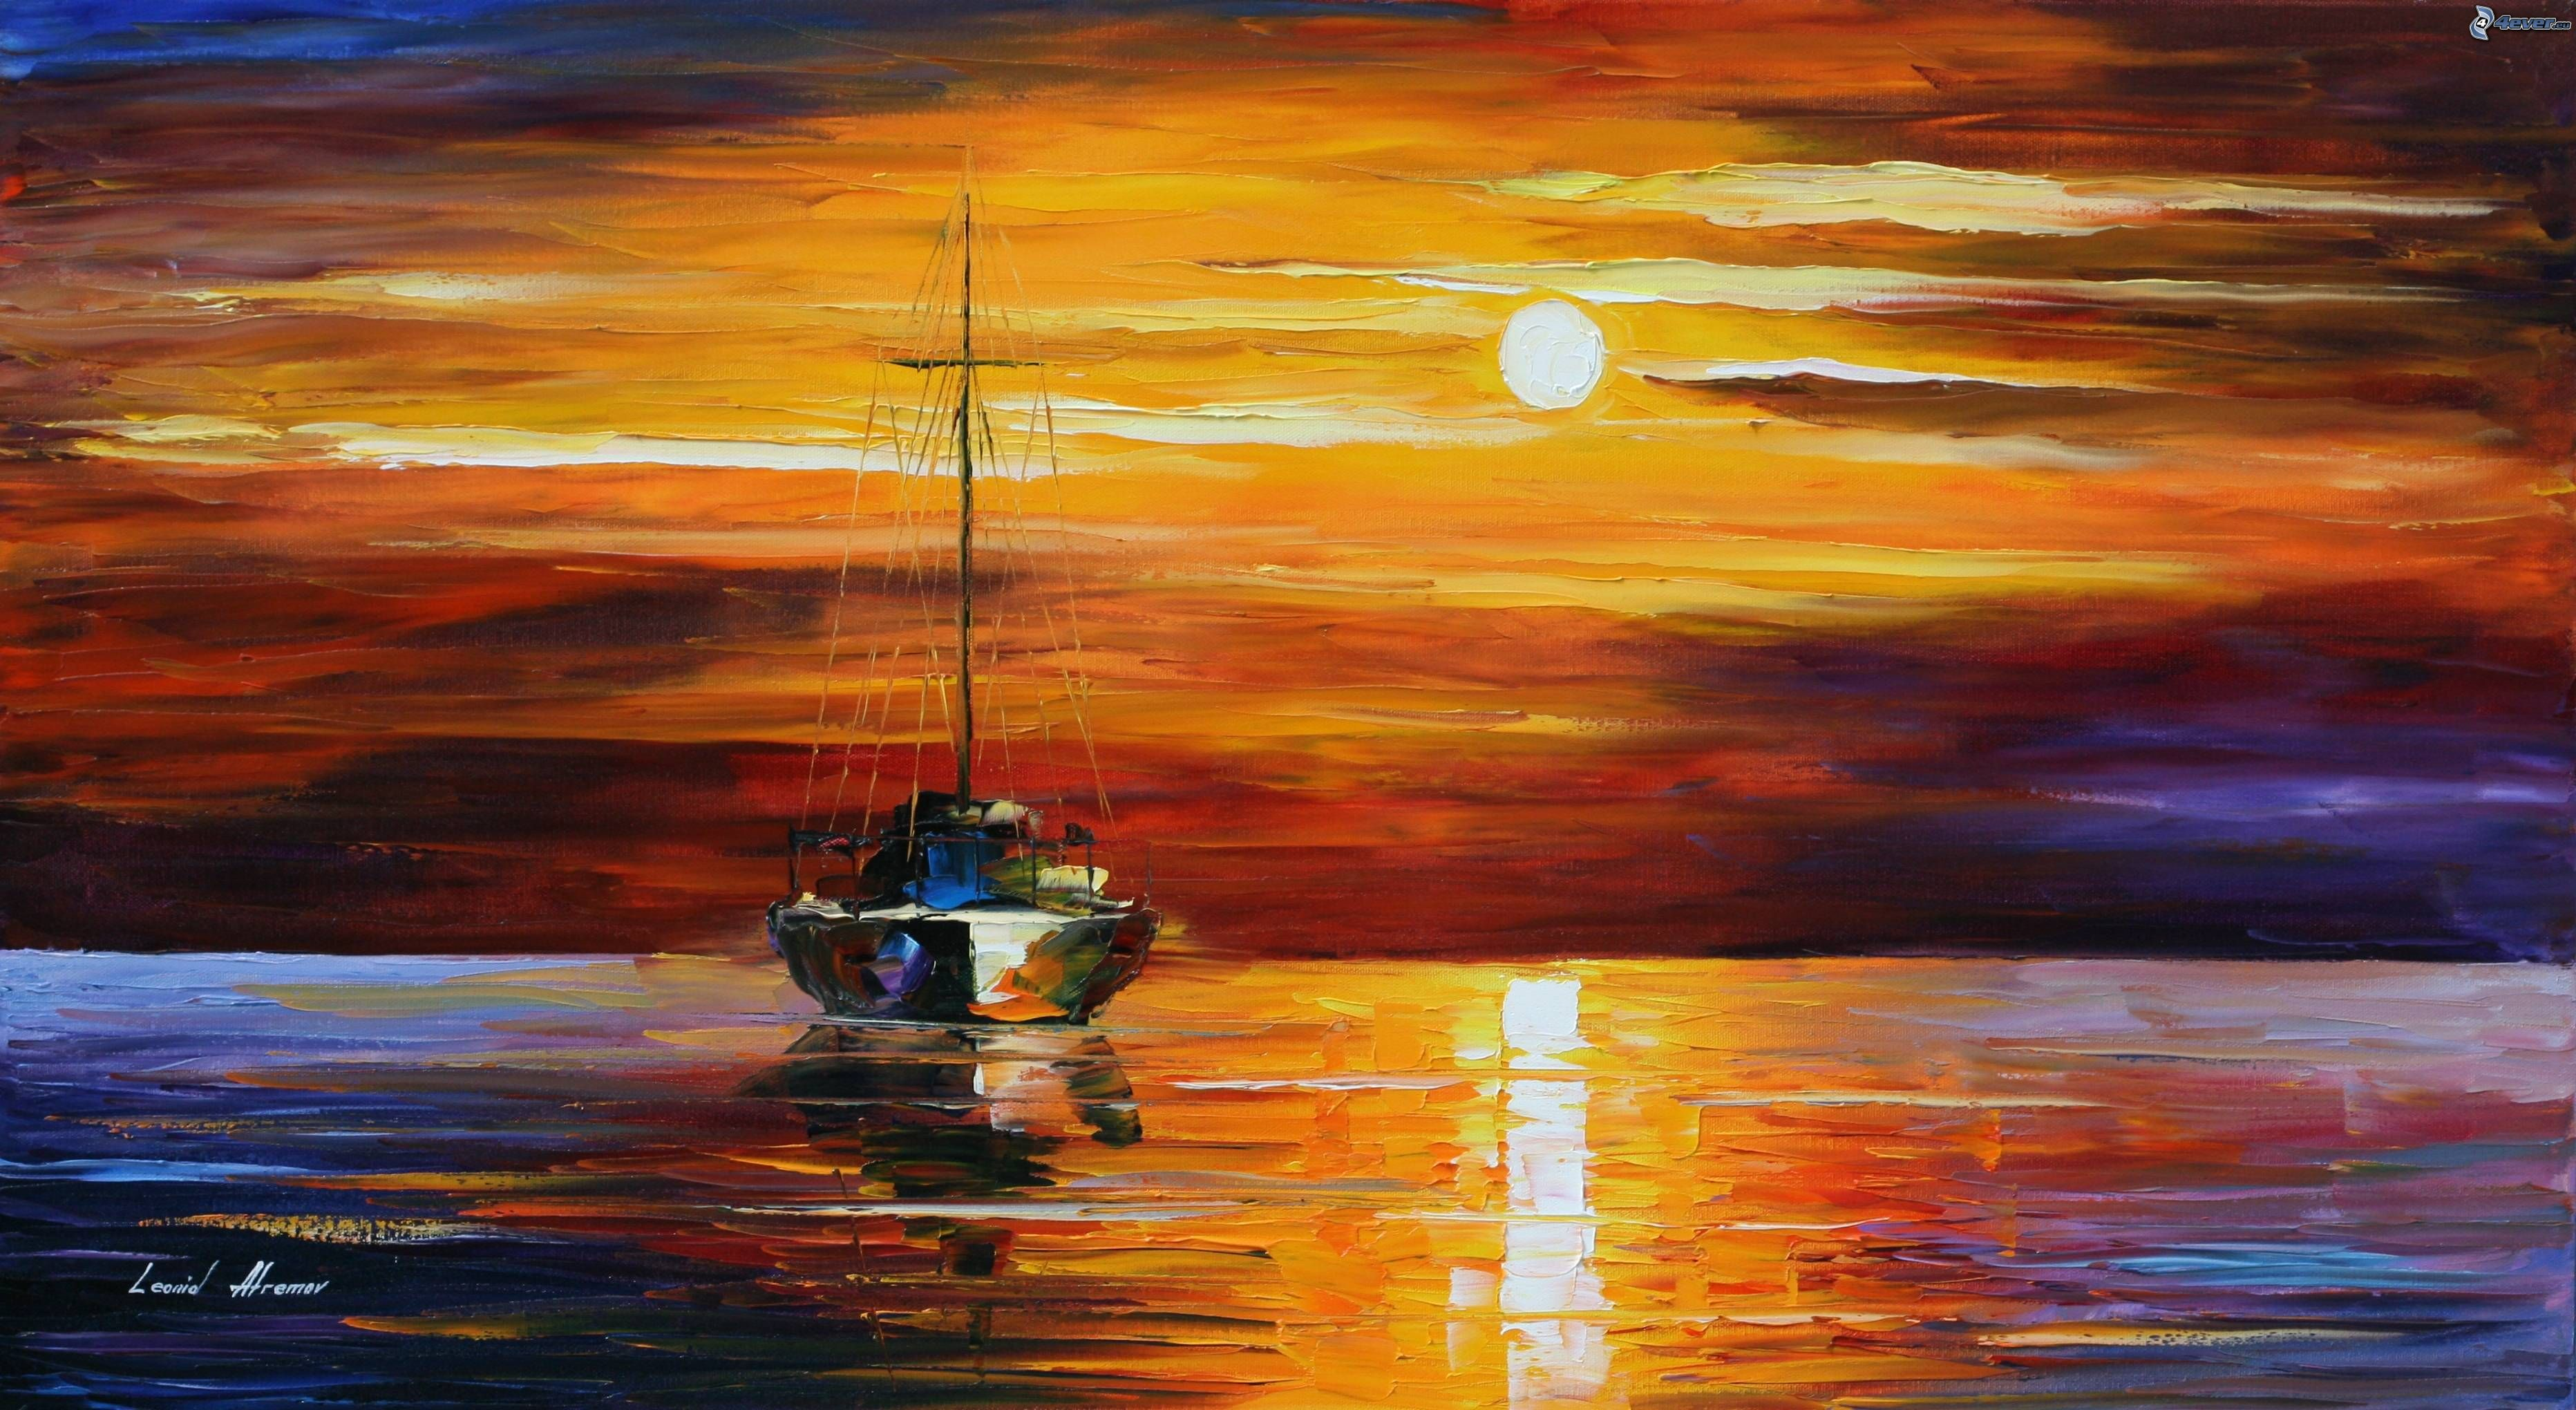 Cuadros Sobre El Mar Oil Painting Ship On The Sea Http Lomets